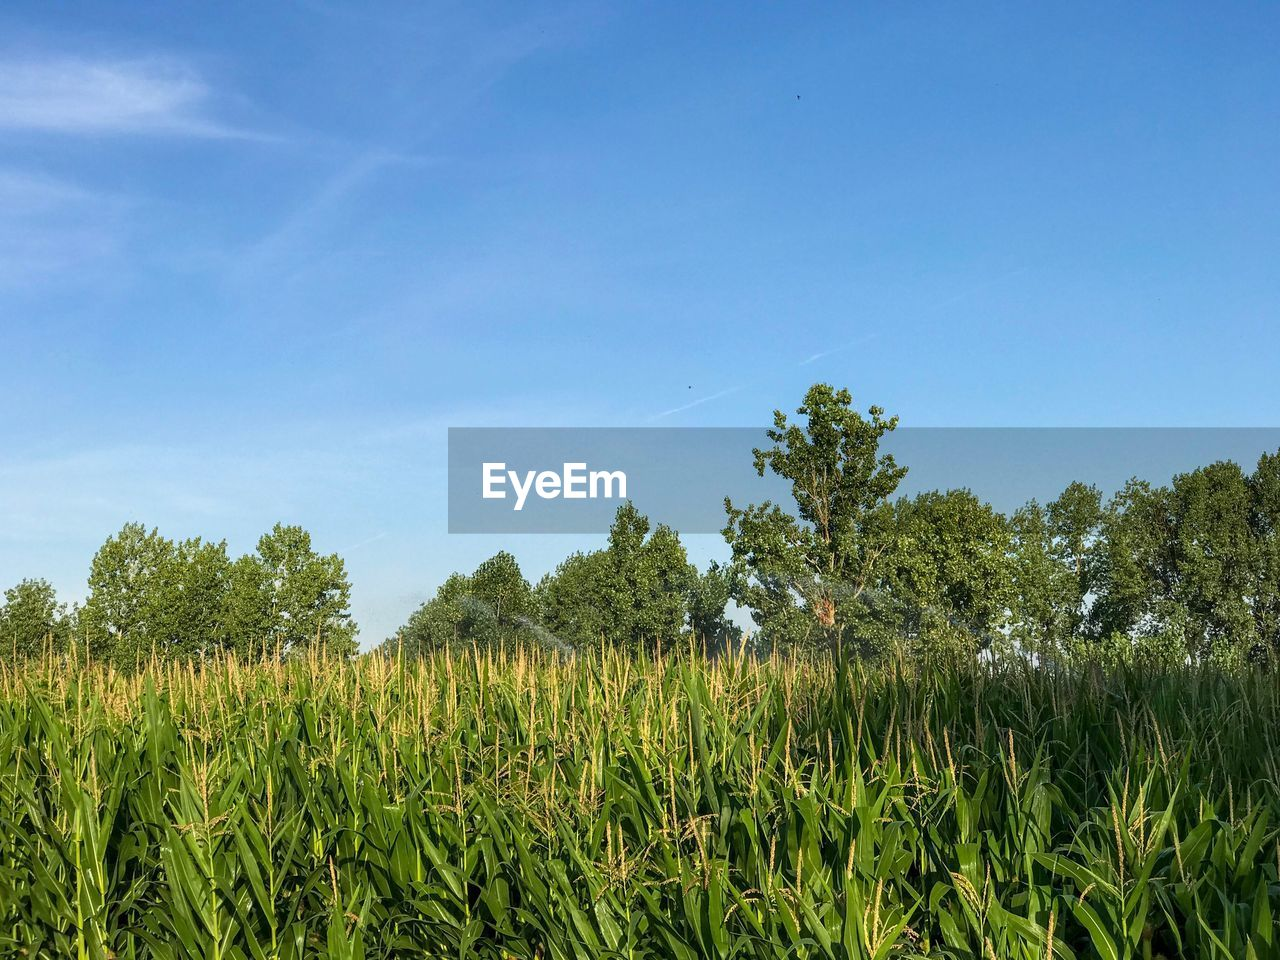 plant, growth, sky, field, landscape, land, tree, environment, tranquility, agriculture, beauty in nature, tranquil scene, rural scene, nature, crop, green color, scenics - nature, day, blue, no people, outdoors, plantation